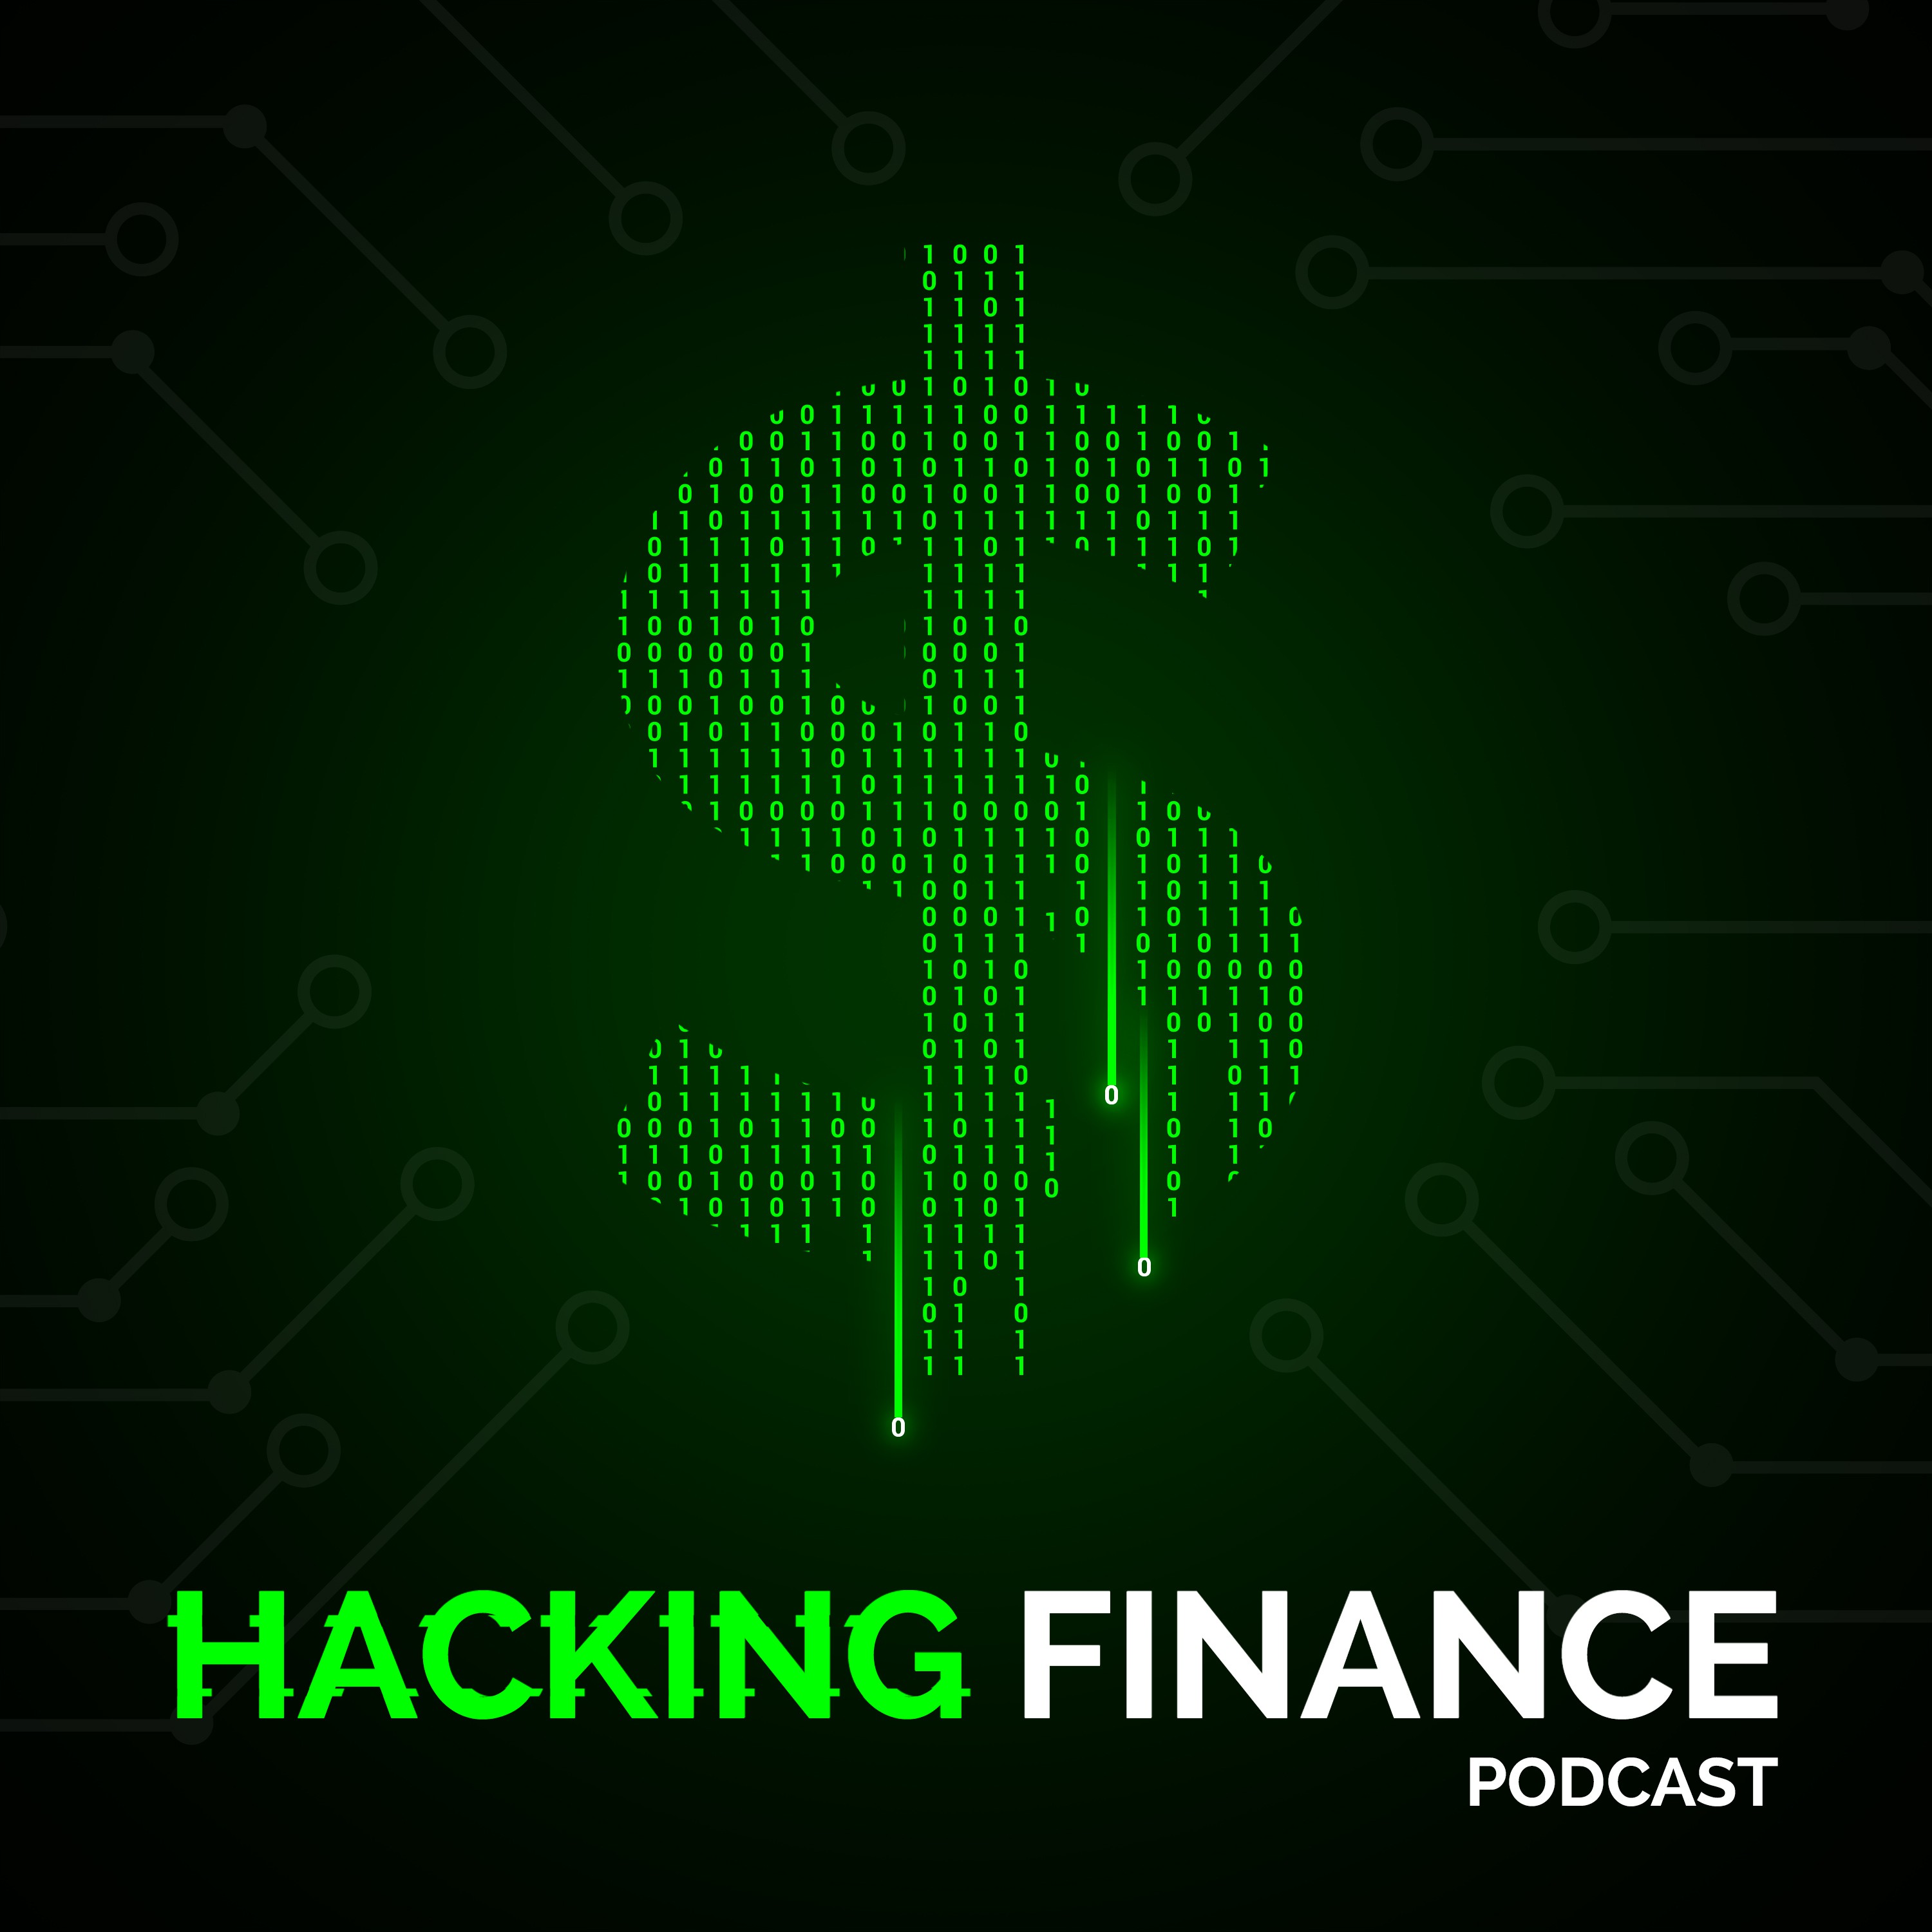 Hacking Finance podcast needs an album cover to attract startup founders